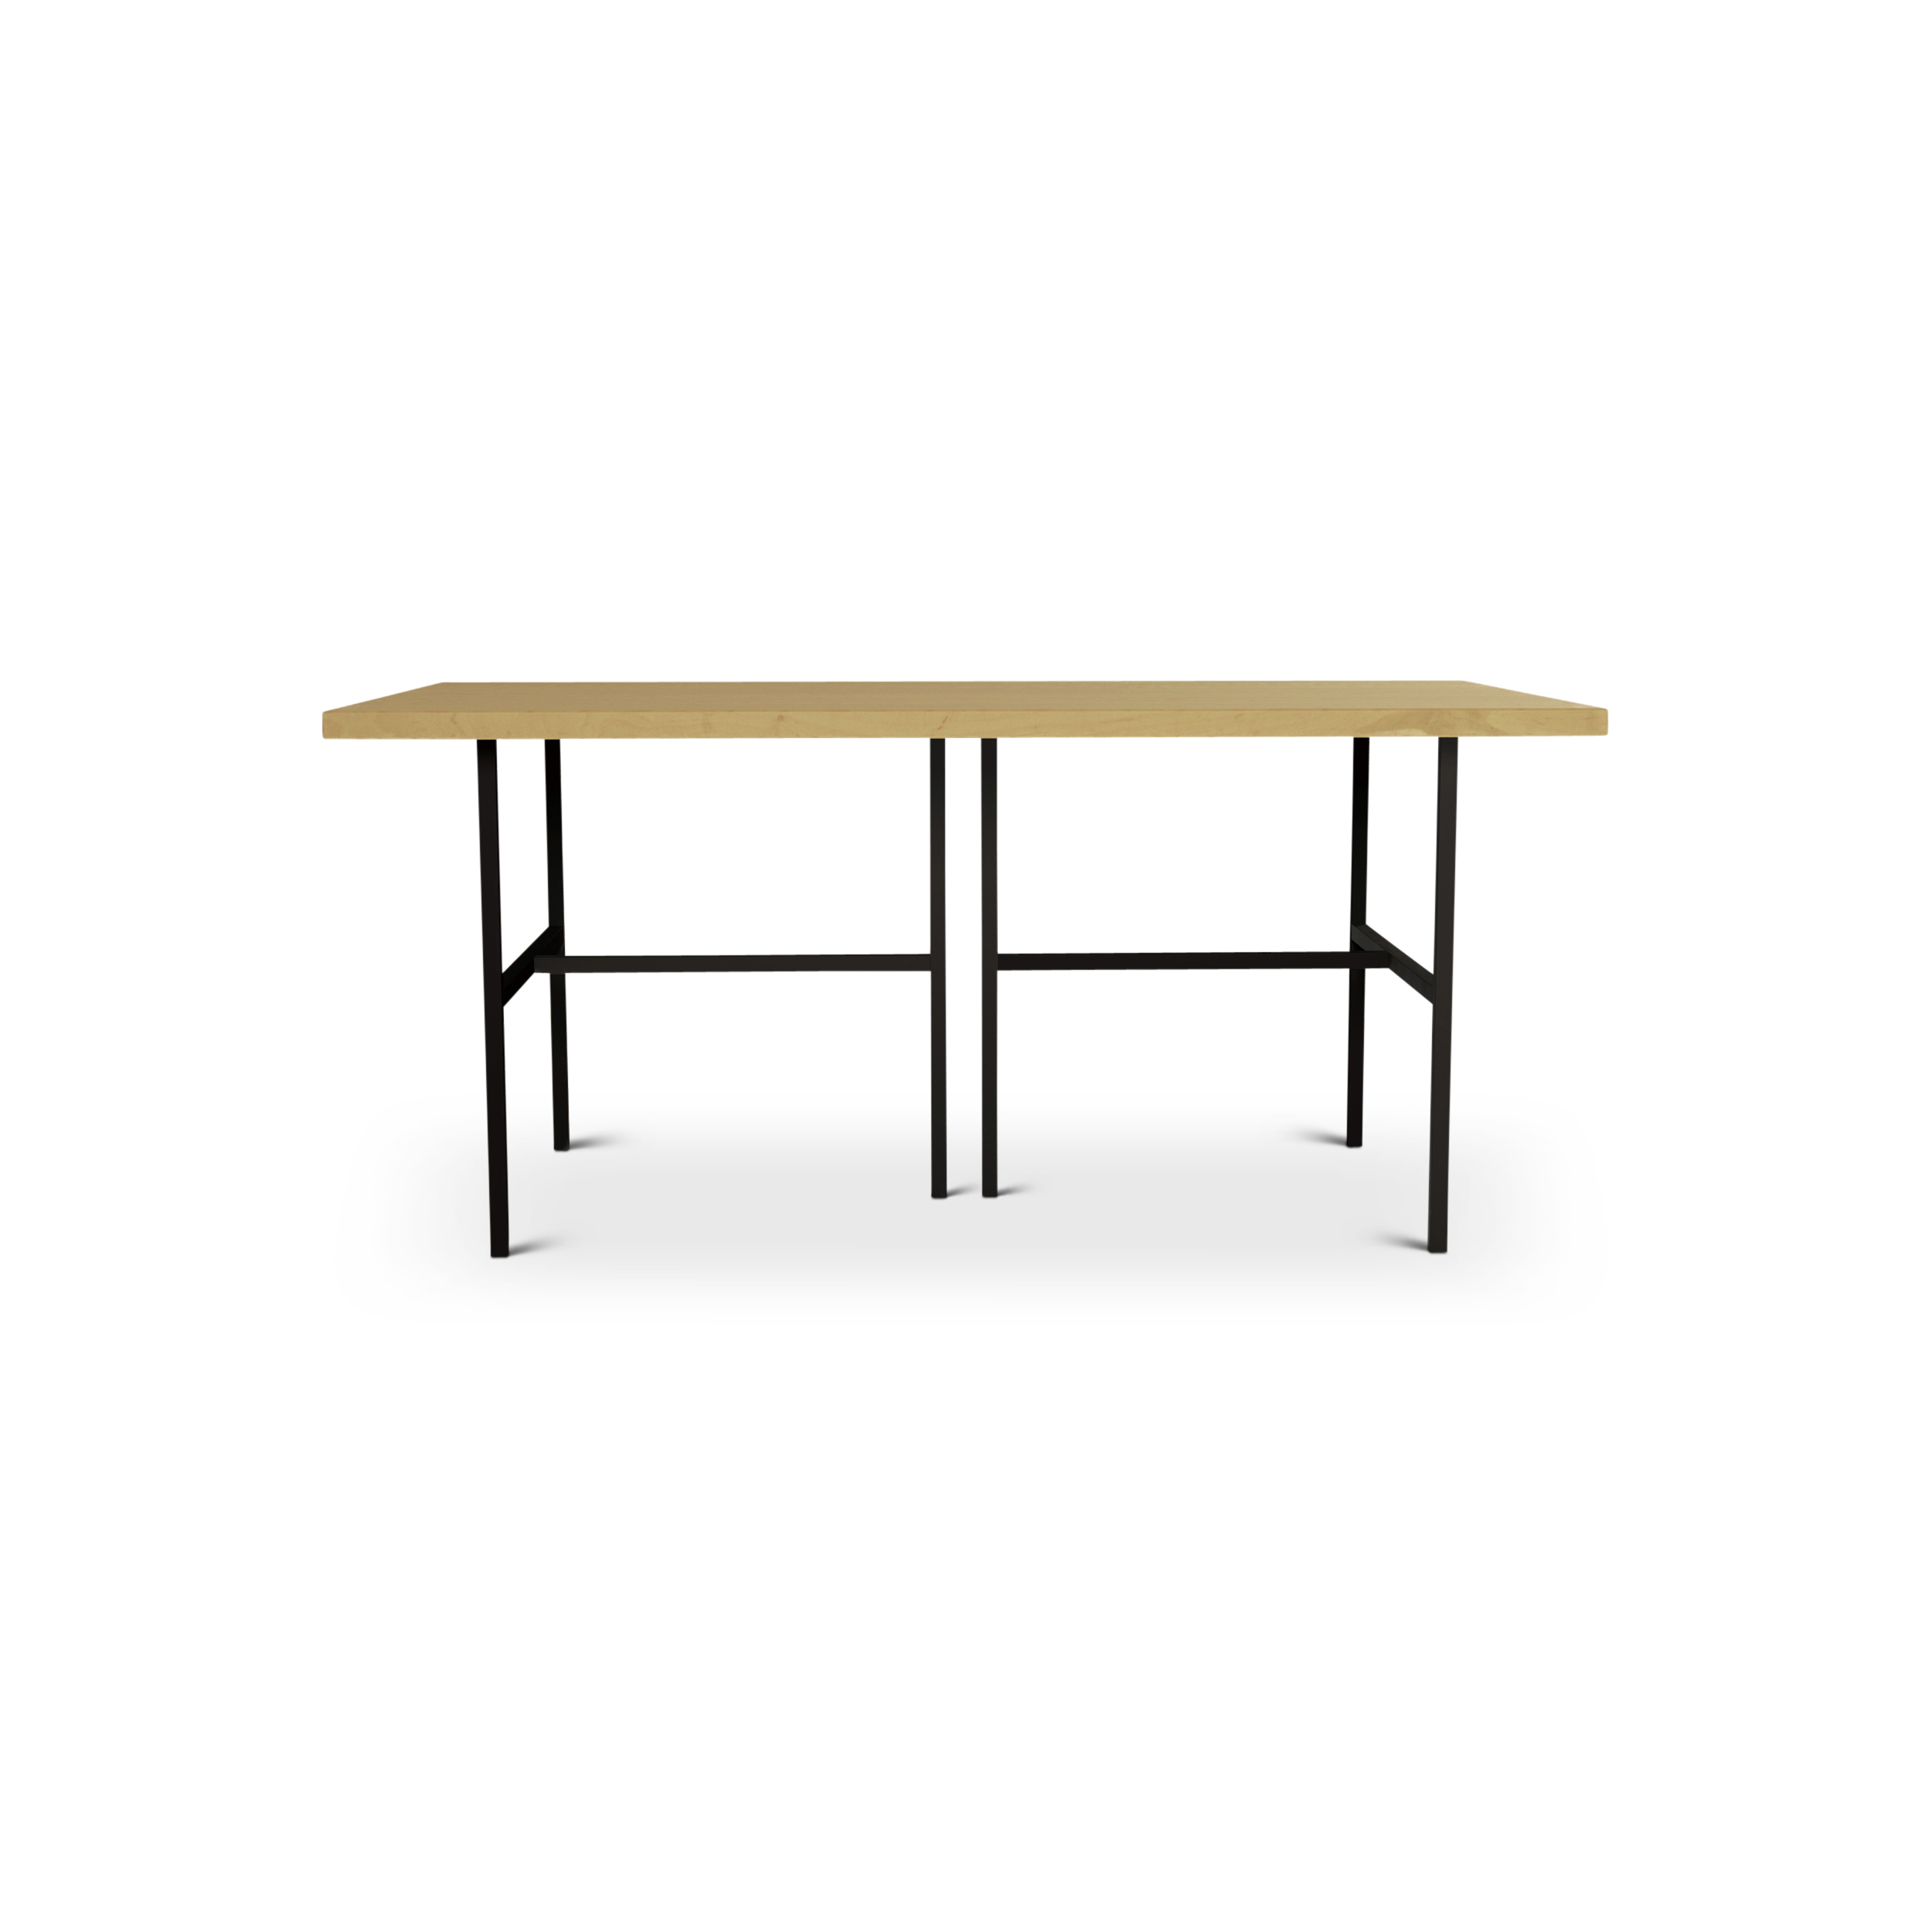 Series 828 66″ Table